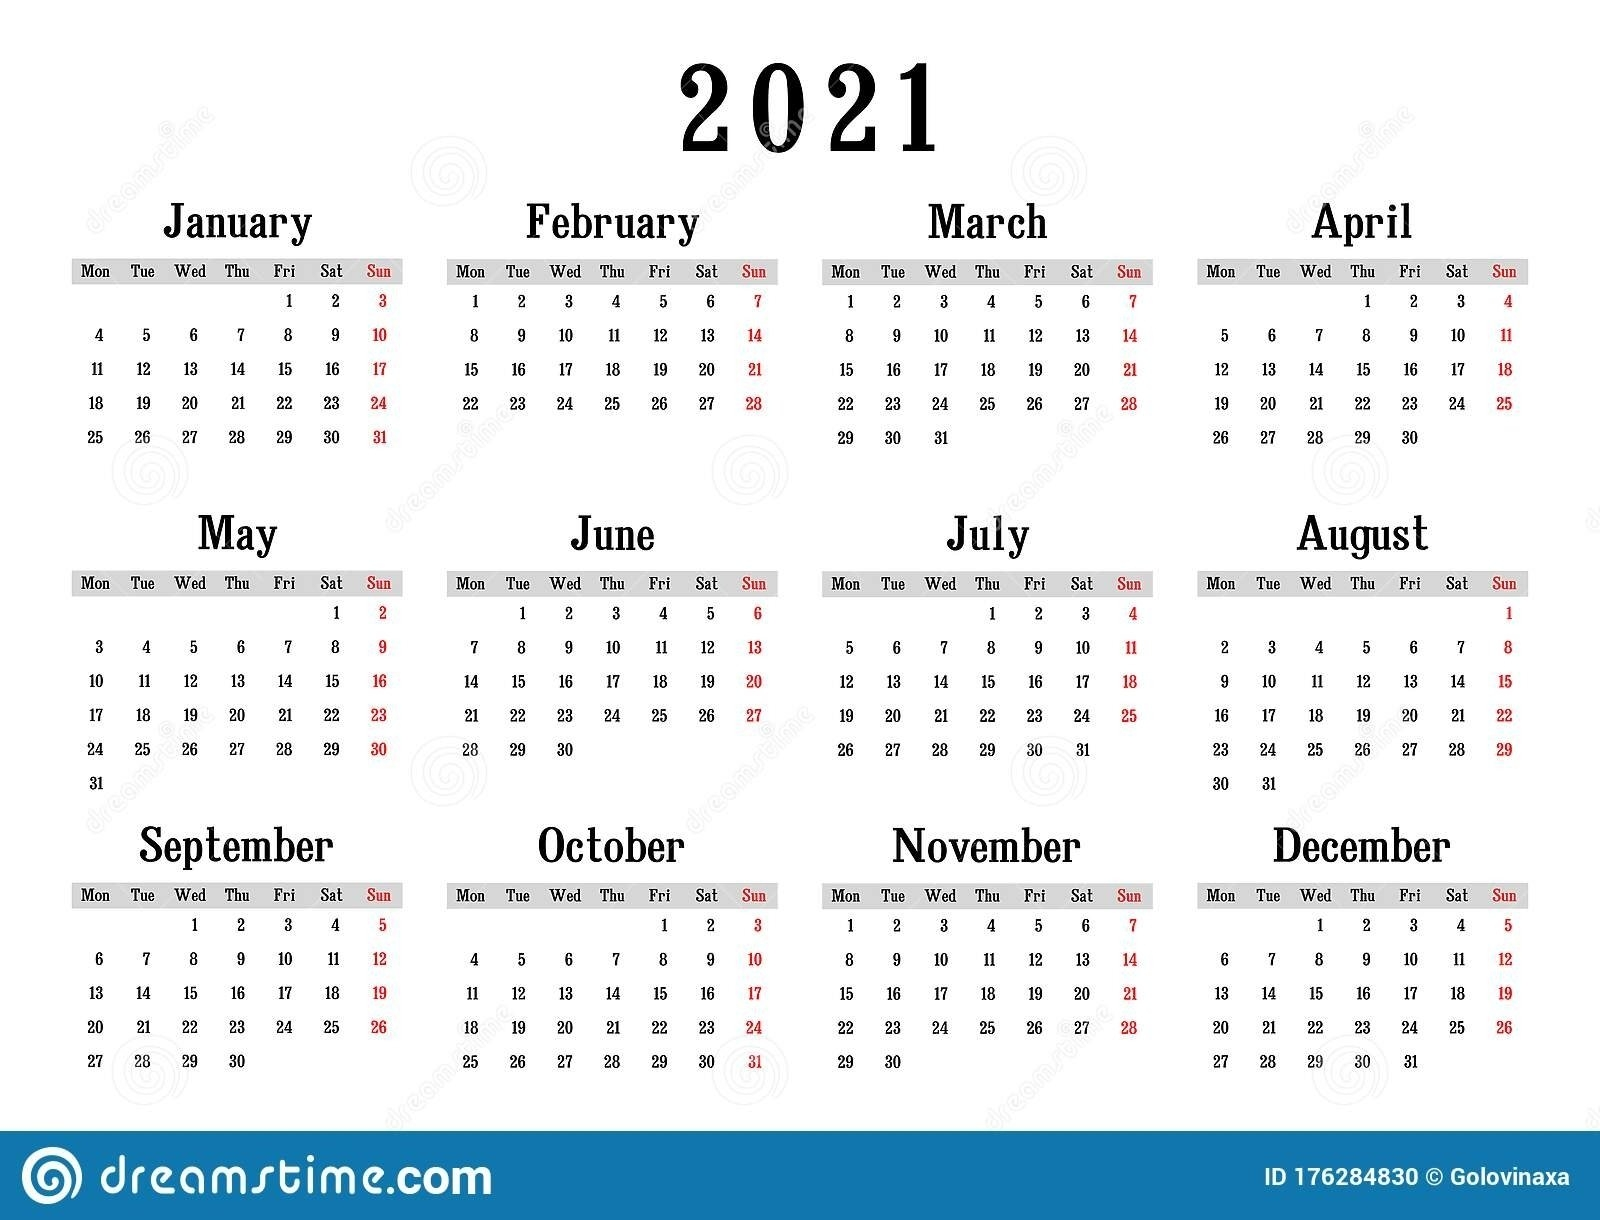 How To Do A Calender With It Startingon Ondya | Ten Free Printable Calendar 2020-2021 within 2021 Monthly Calendar With Lines Printable Image